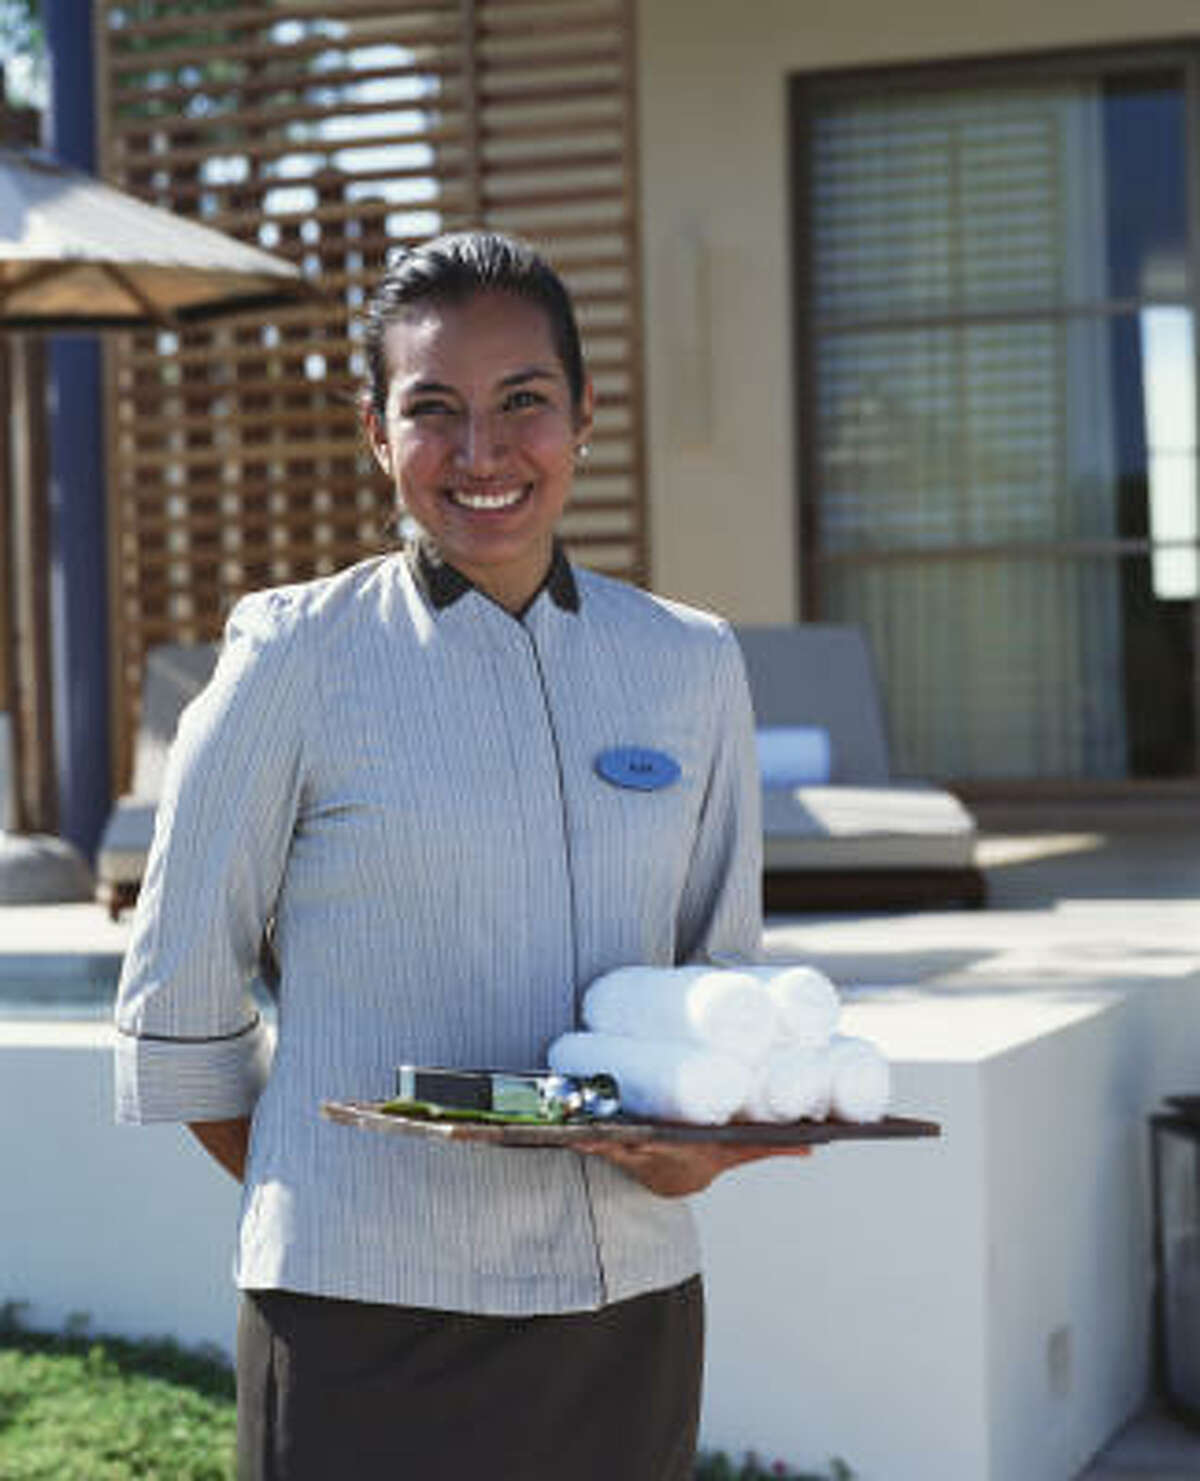 Most rooms at the Rosewood Mayakoba resort come with 24-hour butler service.